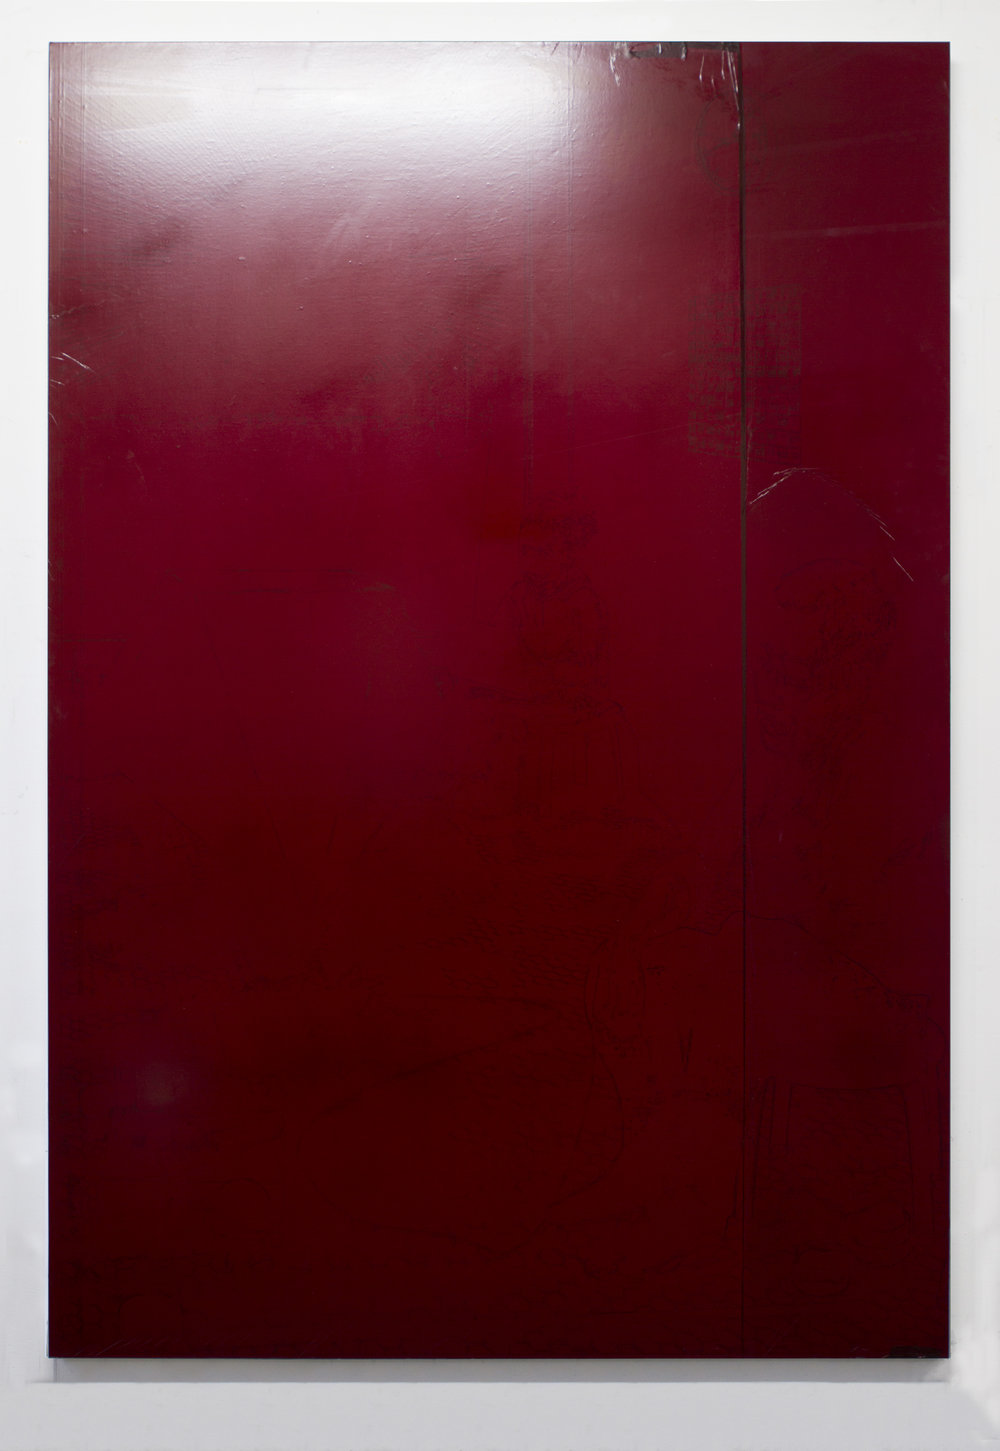 Rubylith 2018 Rubylith on linen 70 x 48 inches